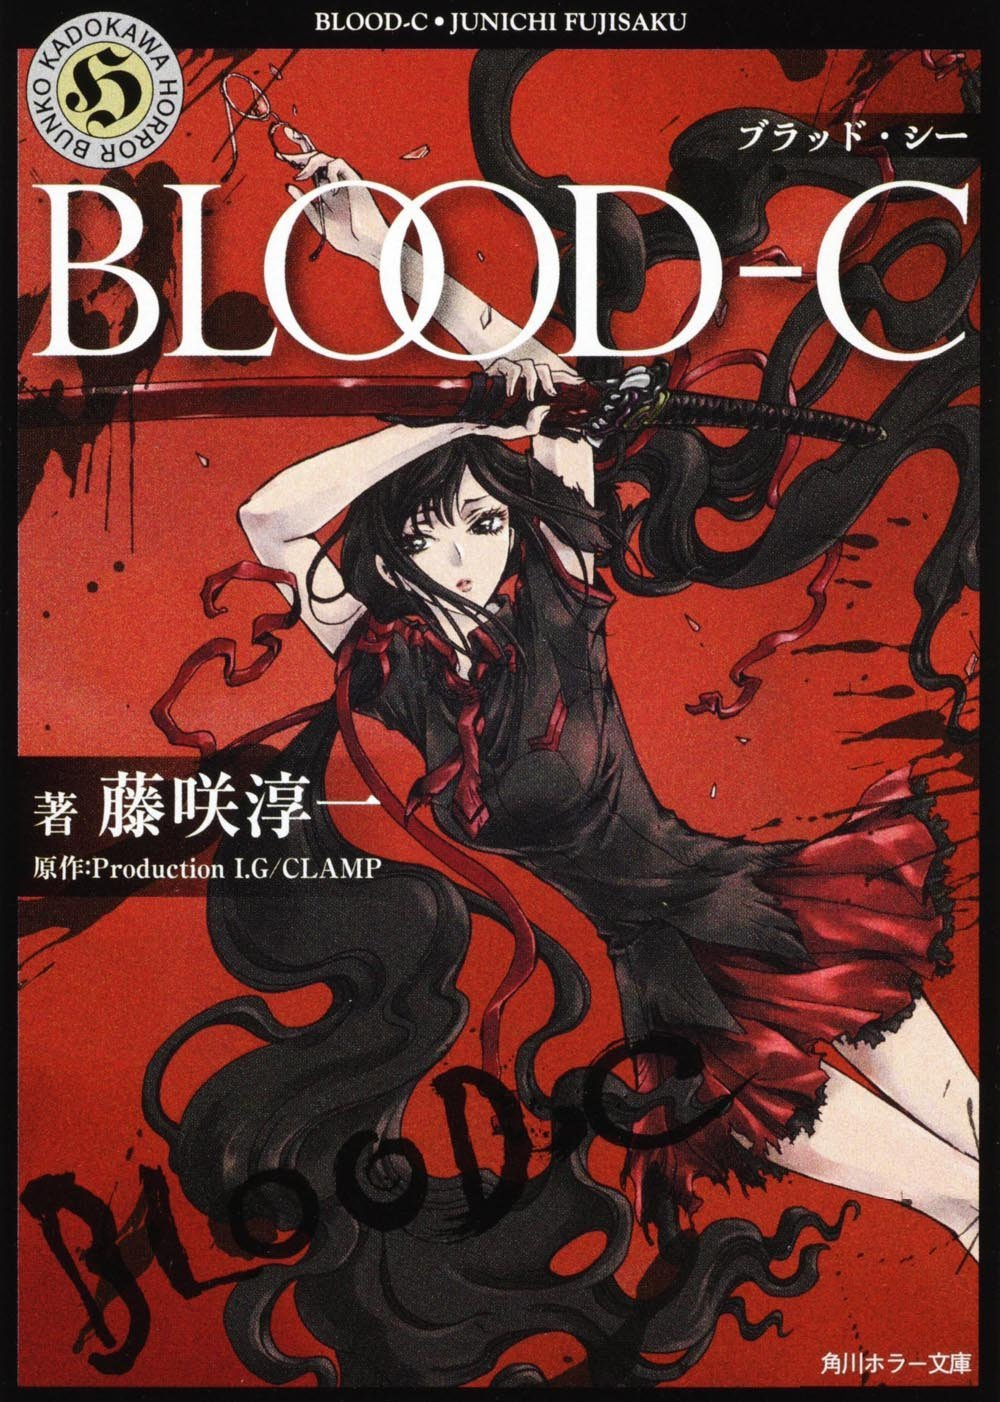 Blood C Anime Characters Wiki : Blood c clamp zerochan anime image board